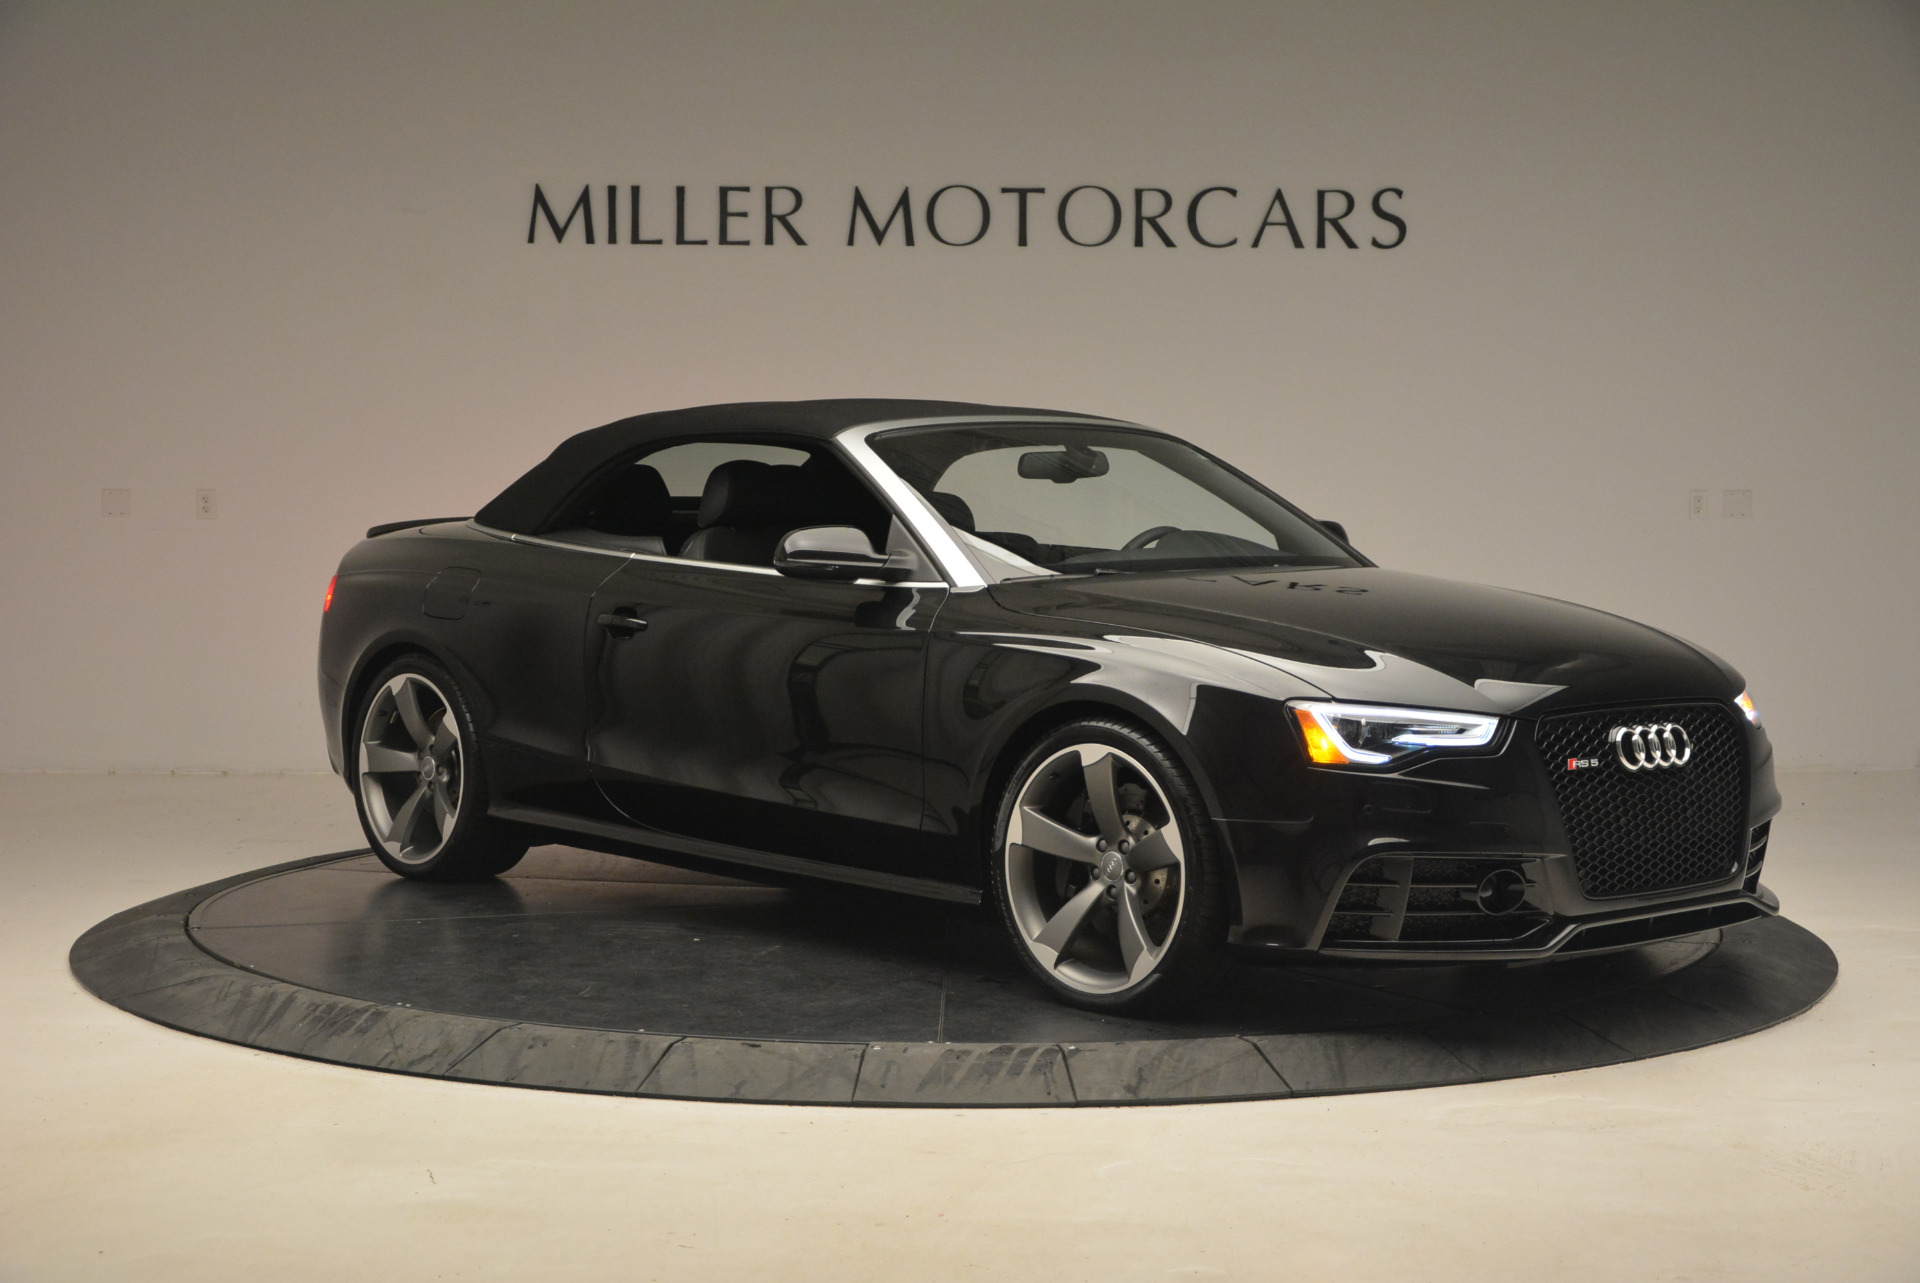 Used 2014 Audi RS 5 quattro For Sale In Greenwich, CT 1149_p22